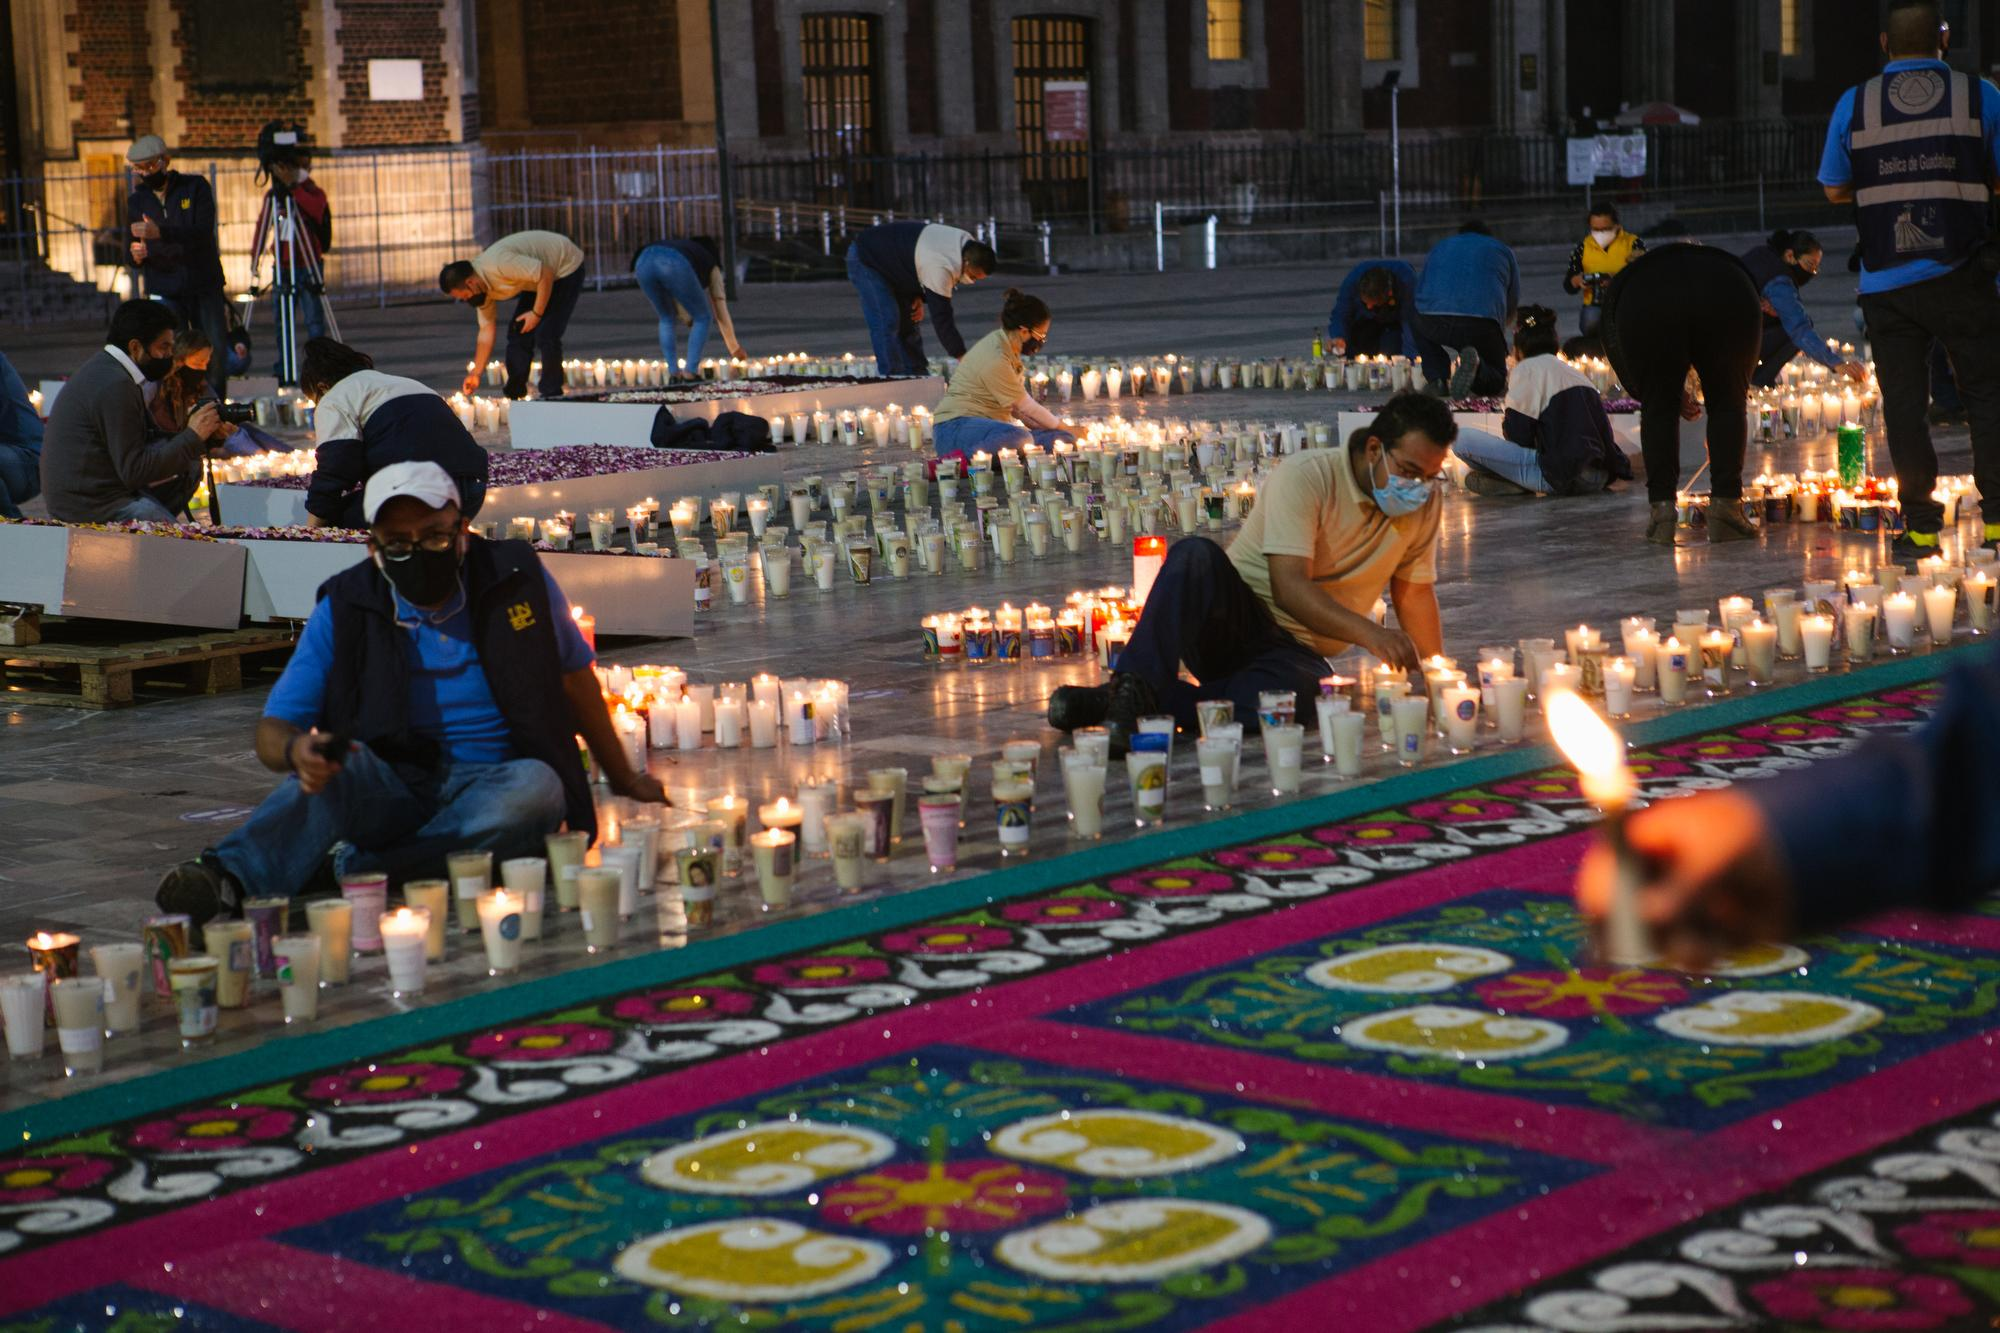 Employees of the Basilica of Our Lady of Guadalupe in Mexico City, Mexico light approximately 15,000 candles left by pilgrims ahead of its closure due to the COVID-19 pandemic. The candles are meant as a symbol of their presence.